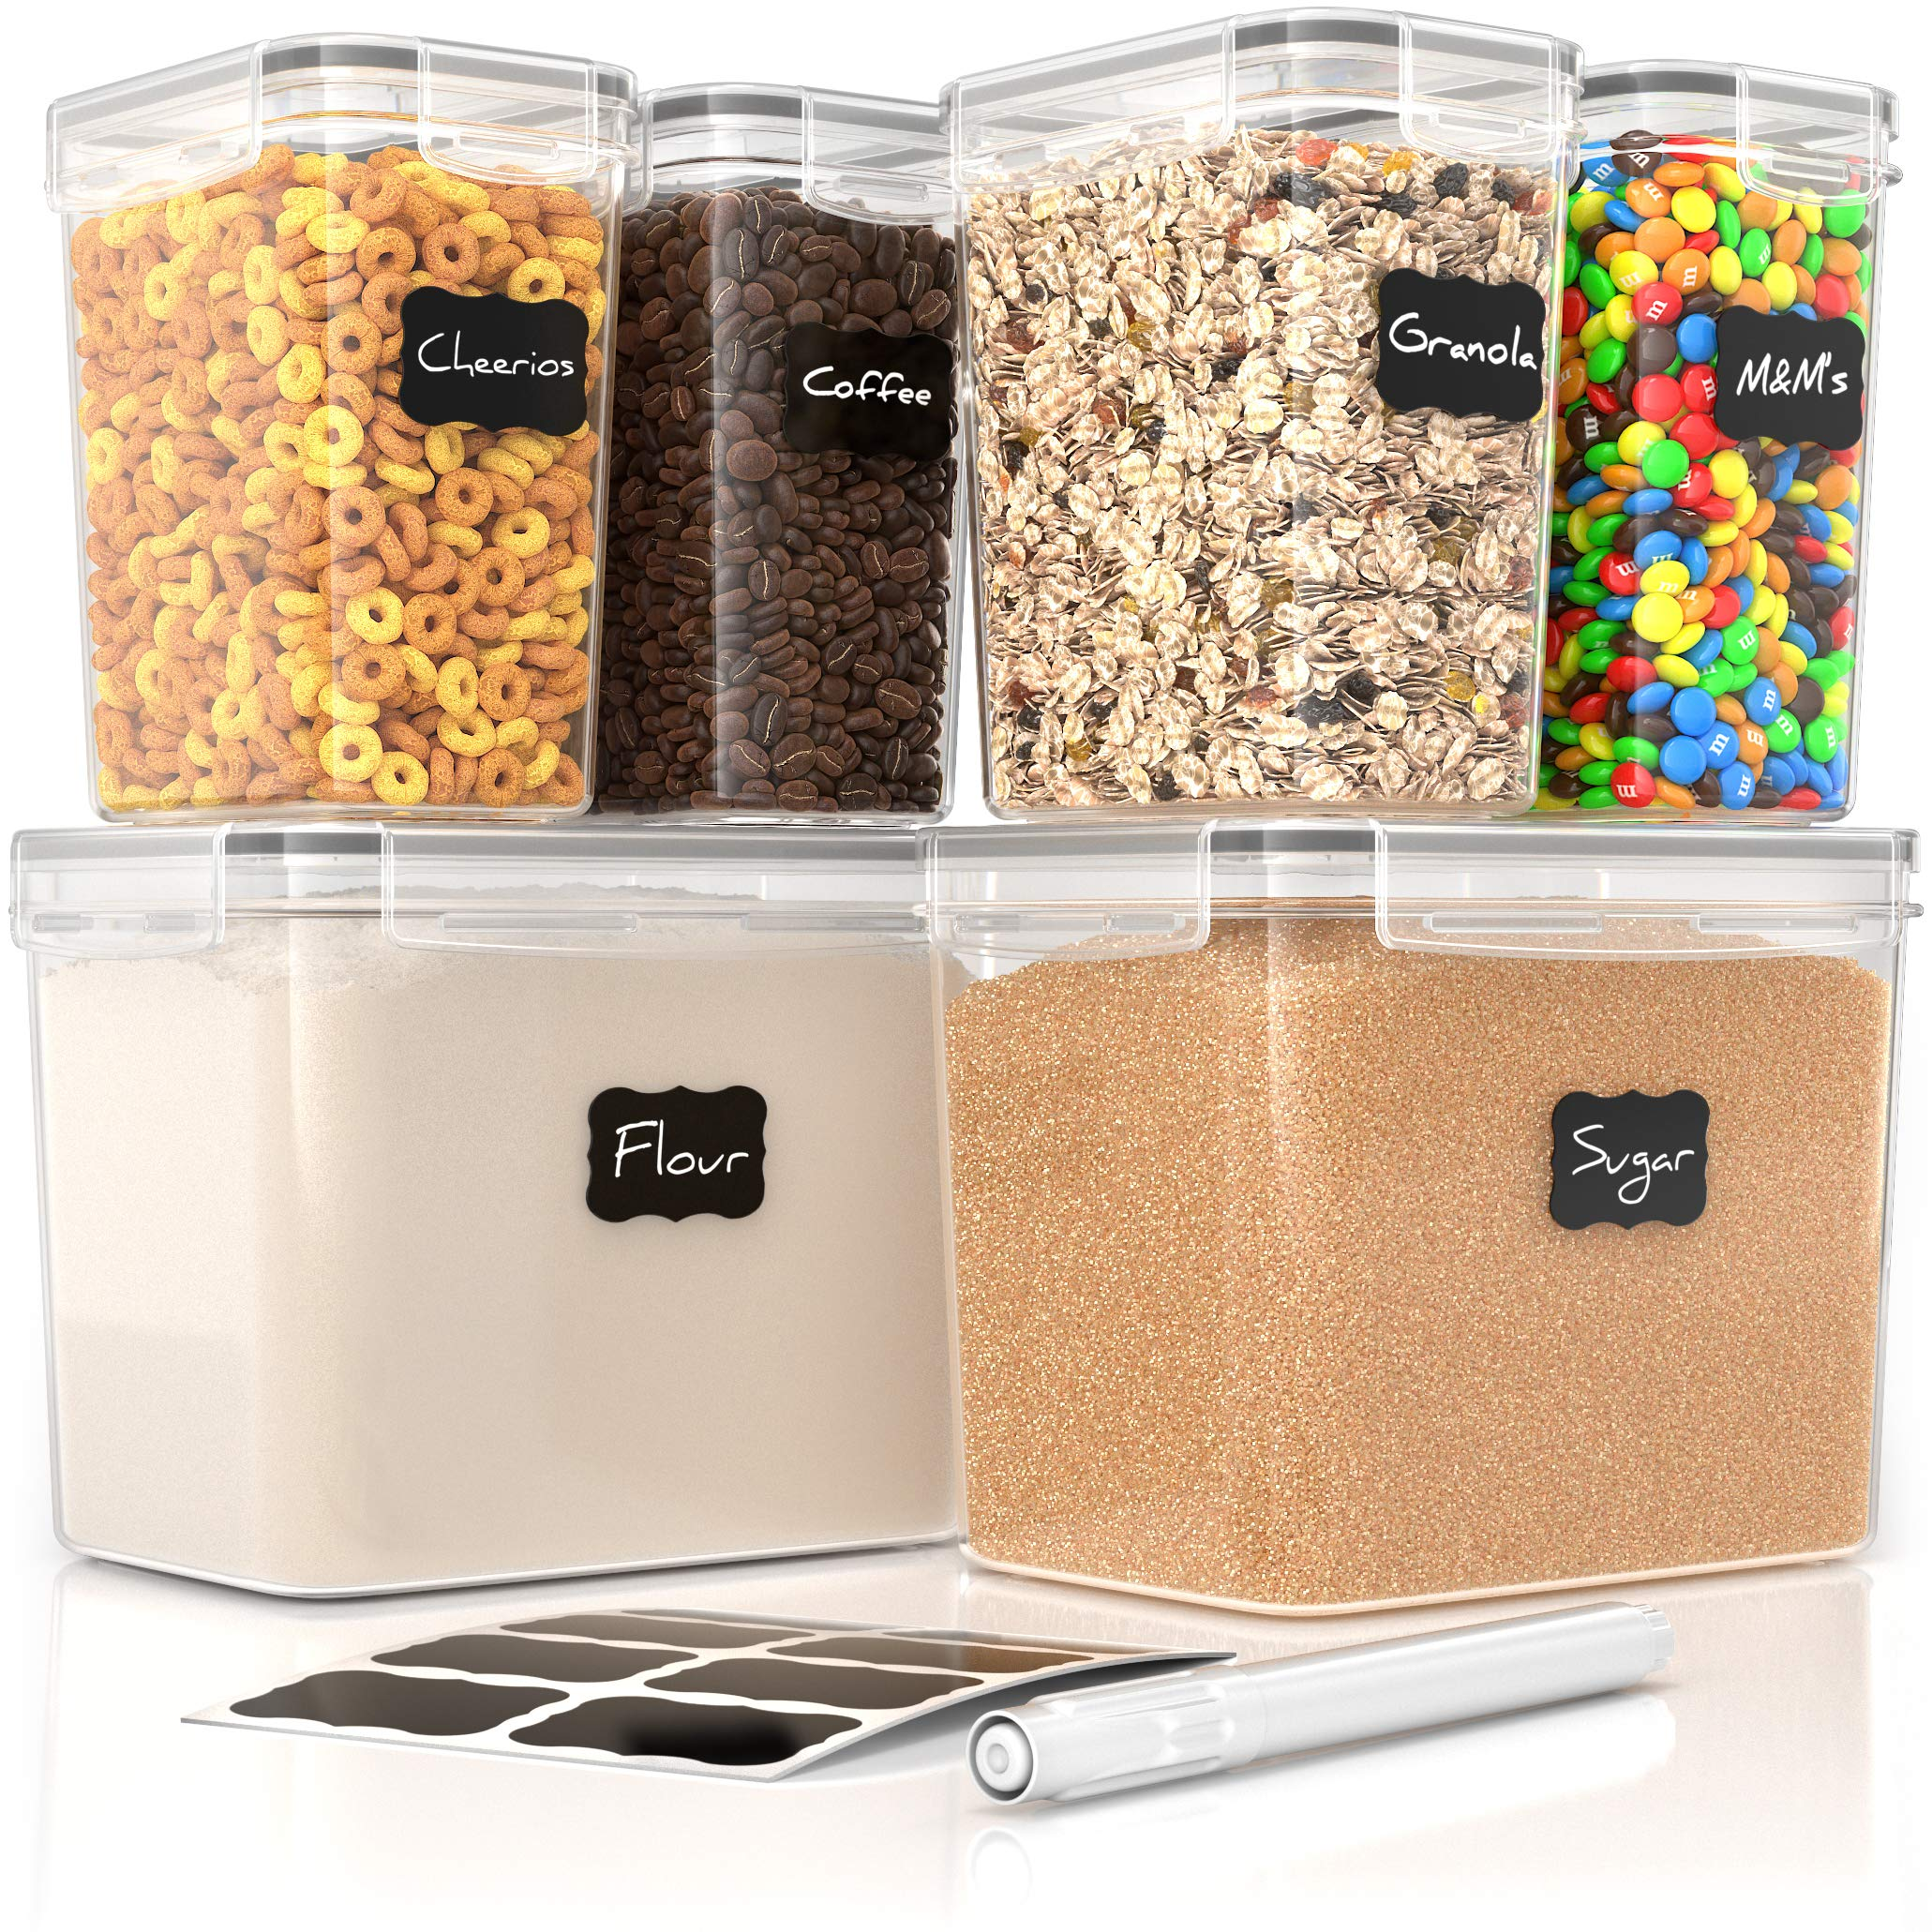 Airtight Food Storage Containers Container